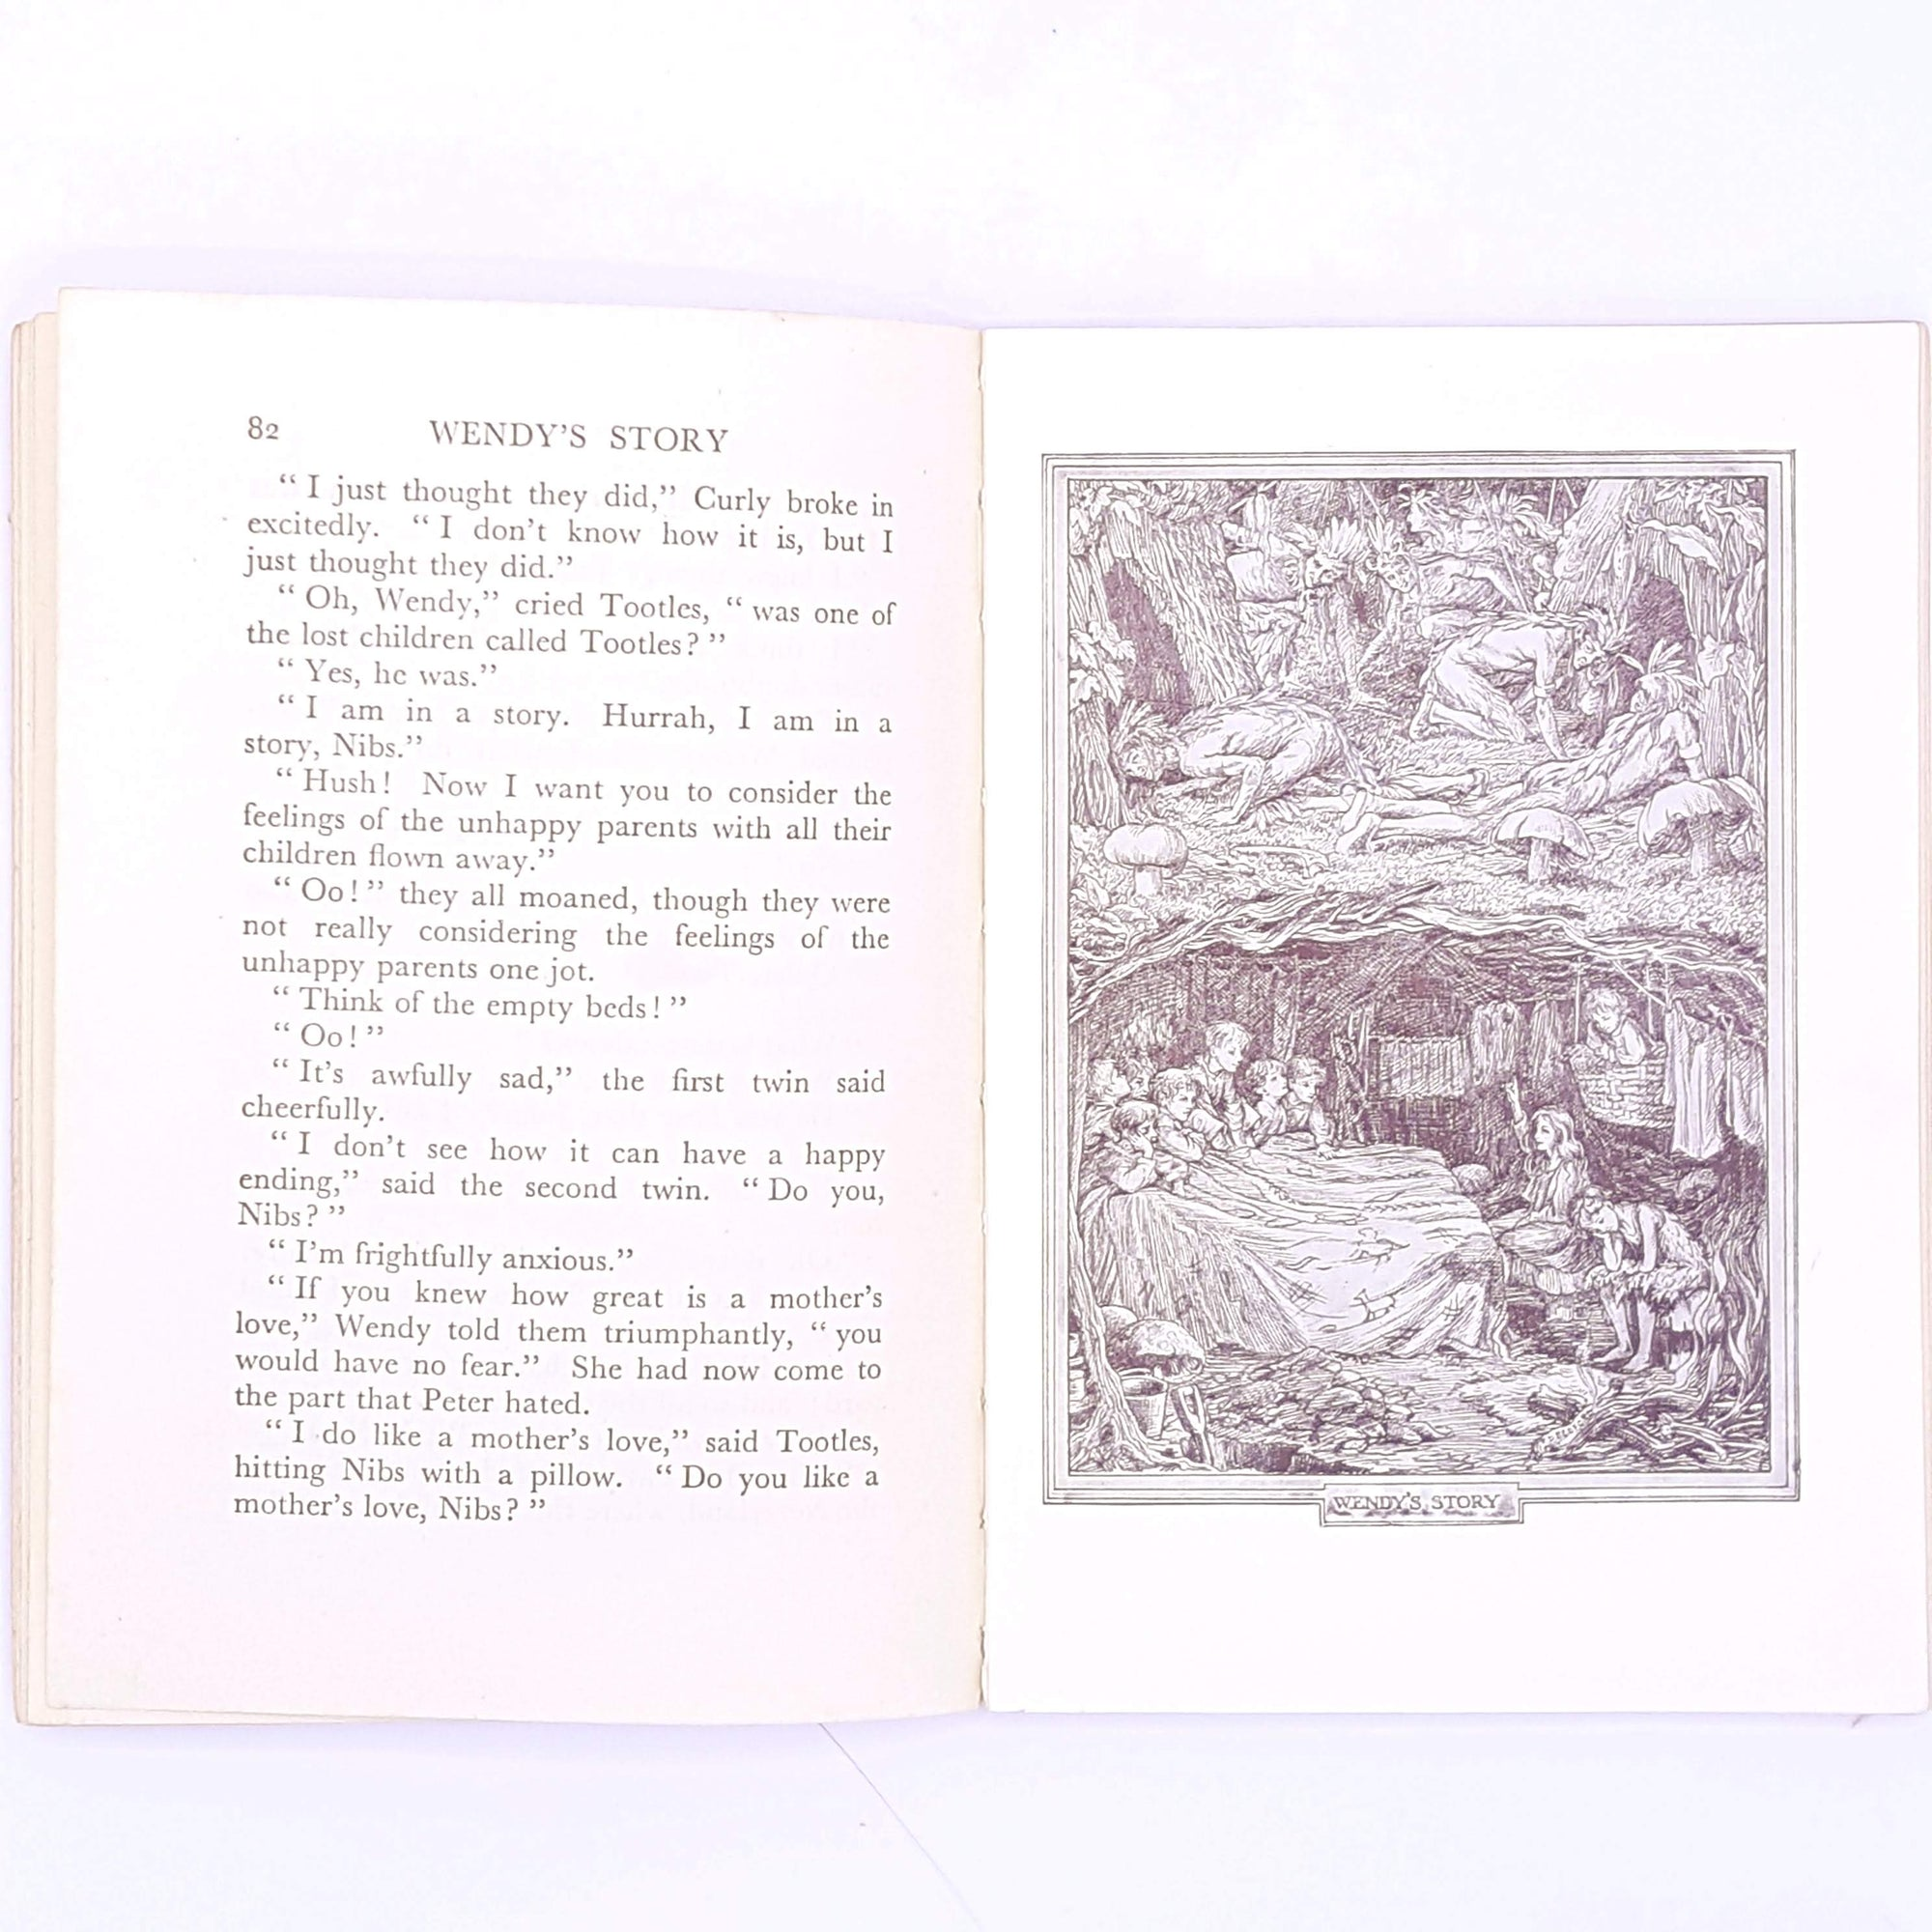 1936-antique-jm-barrie-old-for-kids-patterned-wendy-vintage-christmas-gifts-red-country-house-library-thrift-books-peter-pan-decorative-classic-